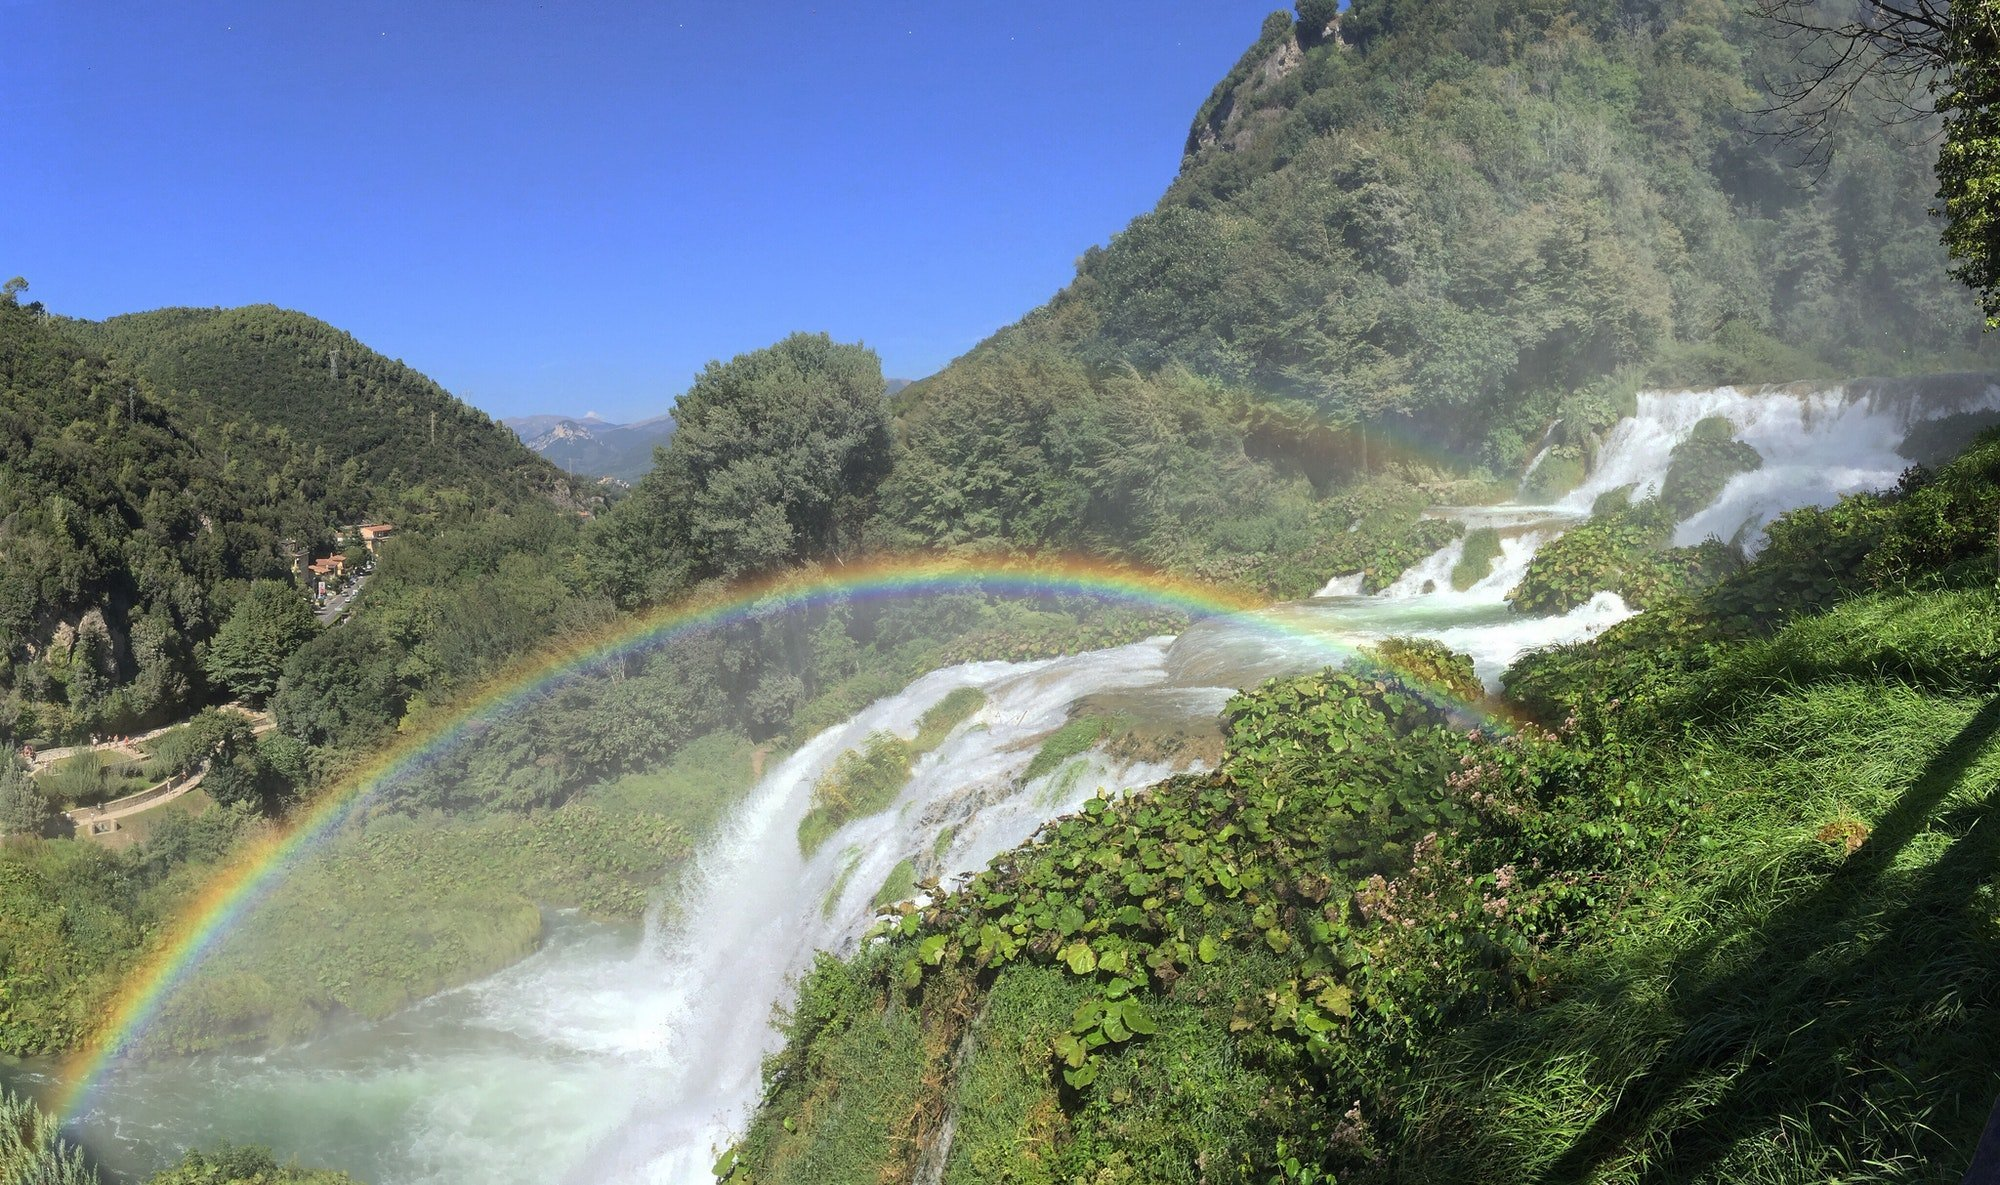 Waterfalls and a double rainbow